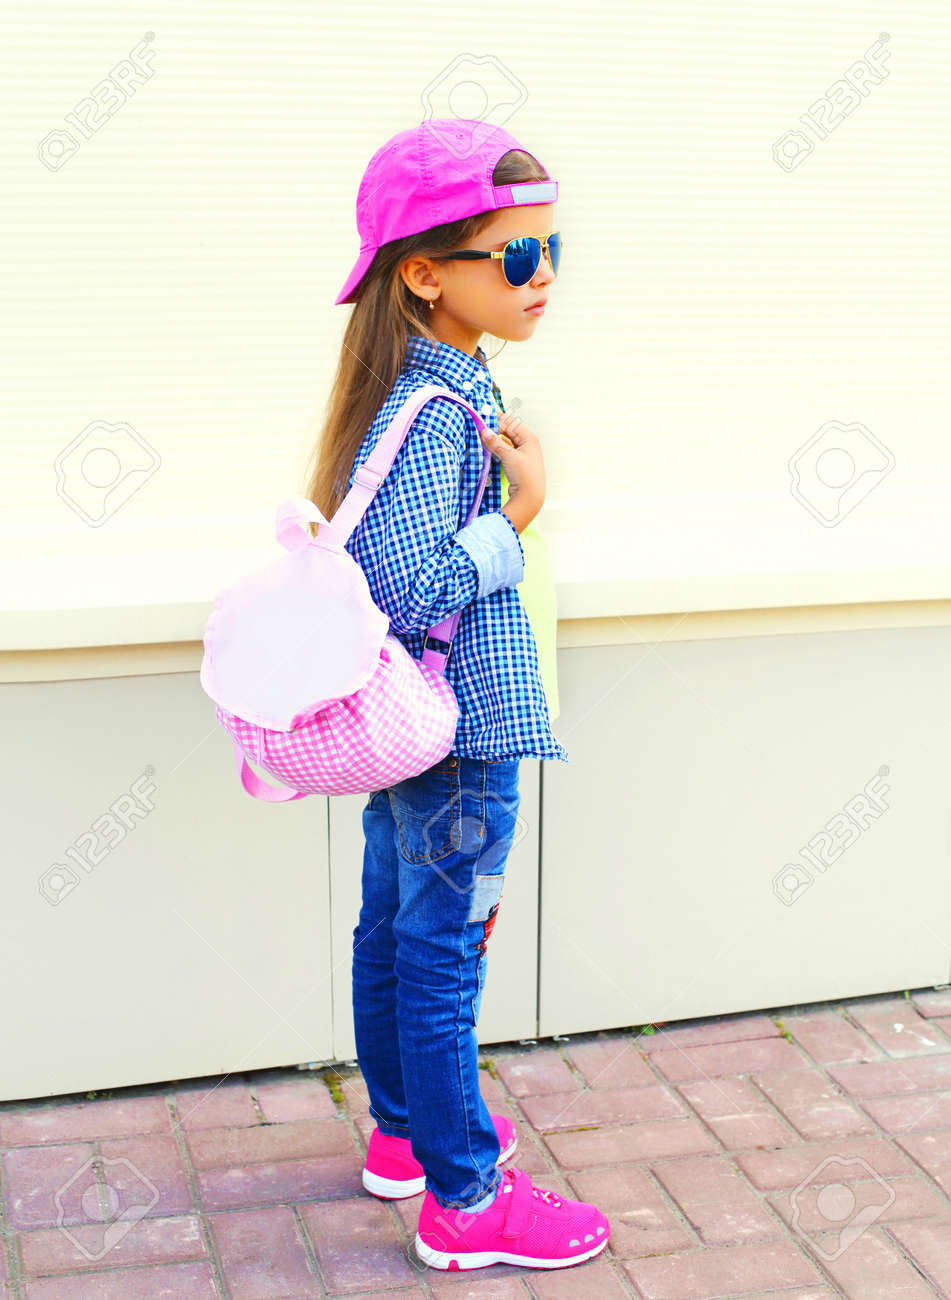 Fashion kid little girl wearing a baseball cap and backpack in the city on  a white ae622af3aee